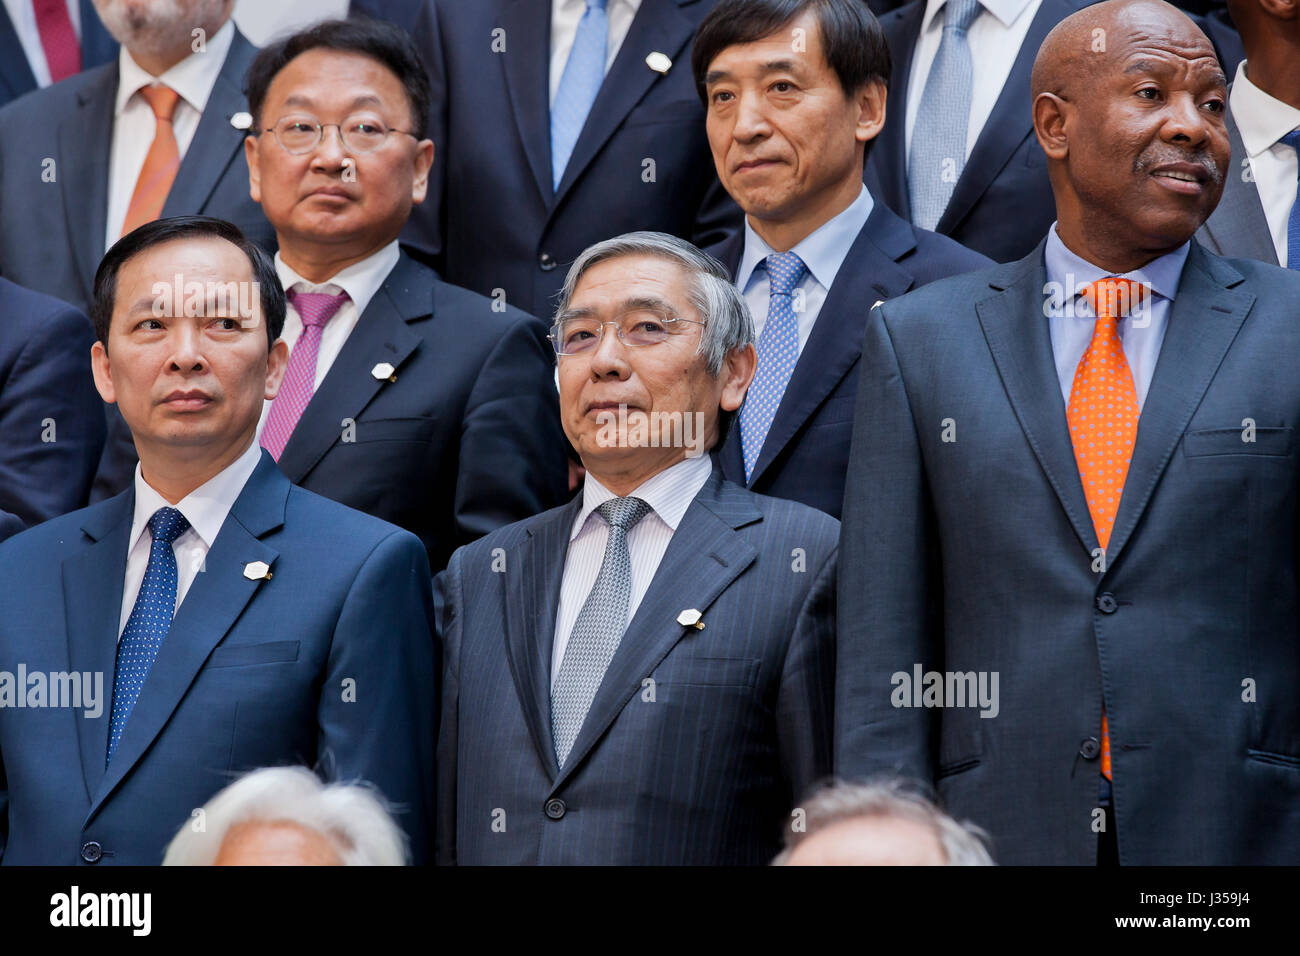 Asian nation Finance Ministers during G20 group photo at 2017 IMF Spring Meetings - Washington, DC, USA - Stock Image